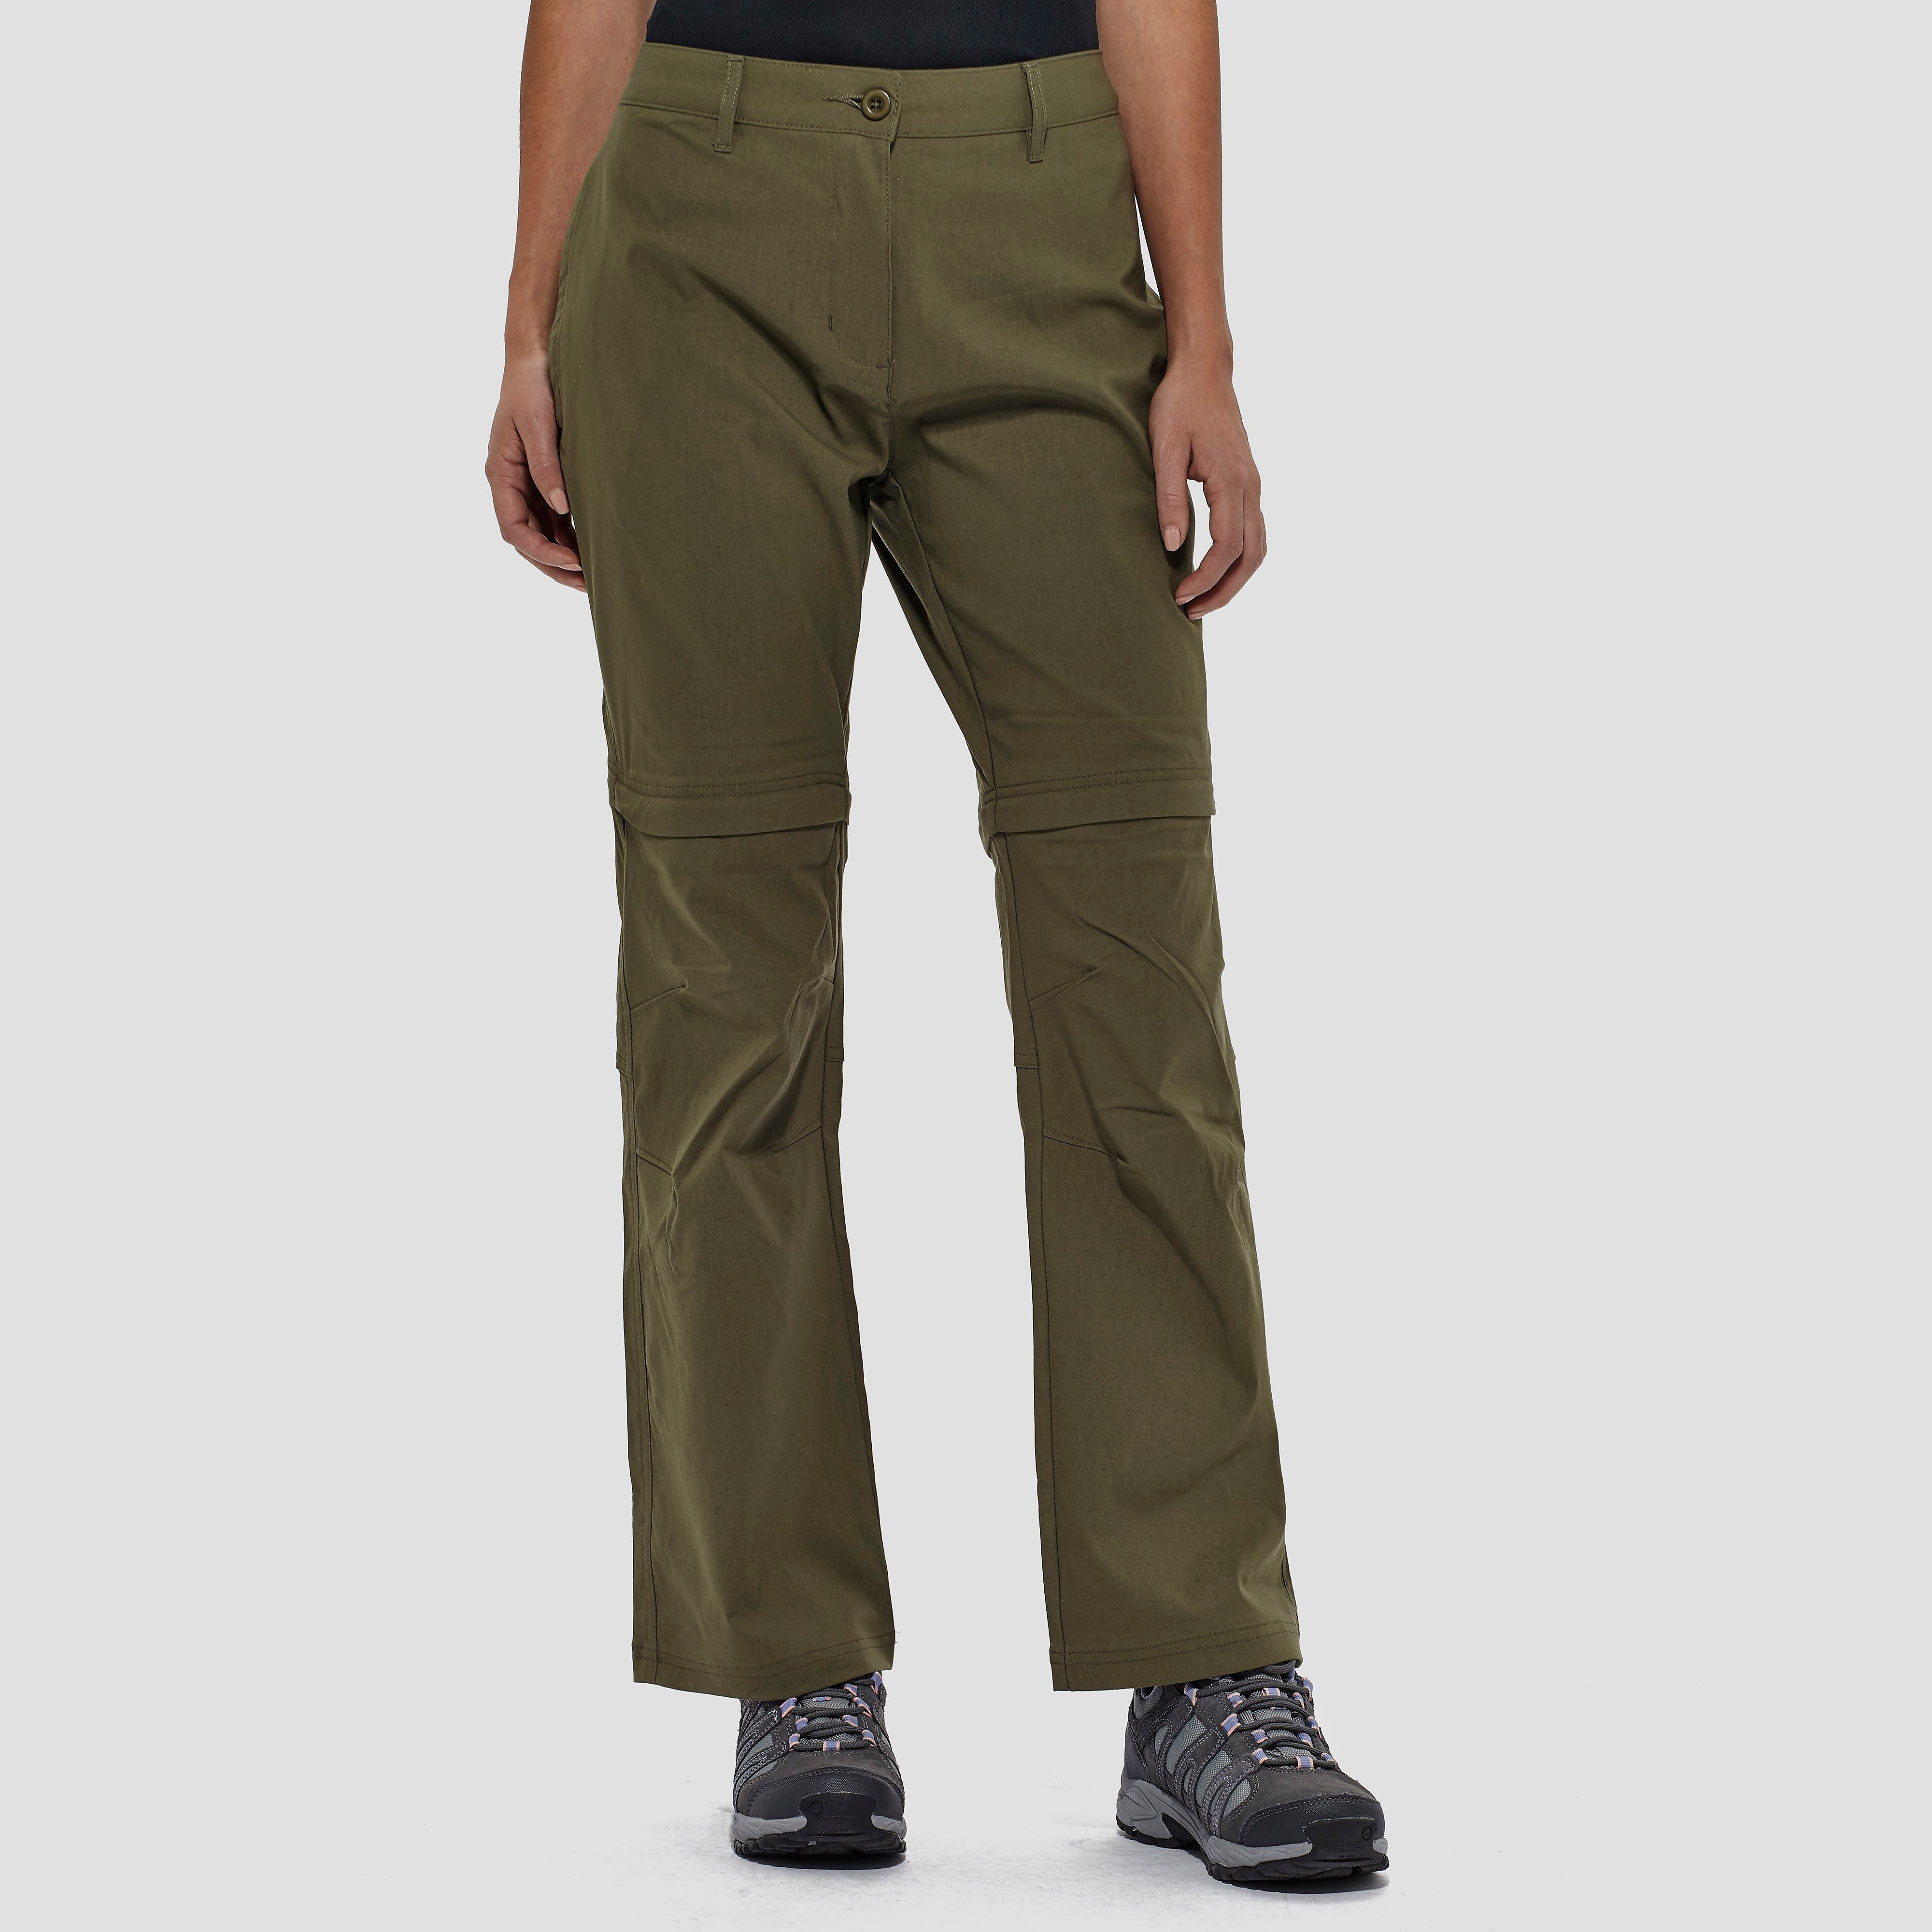 Peter Storm Stretch Convertible Zip Off Trousers